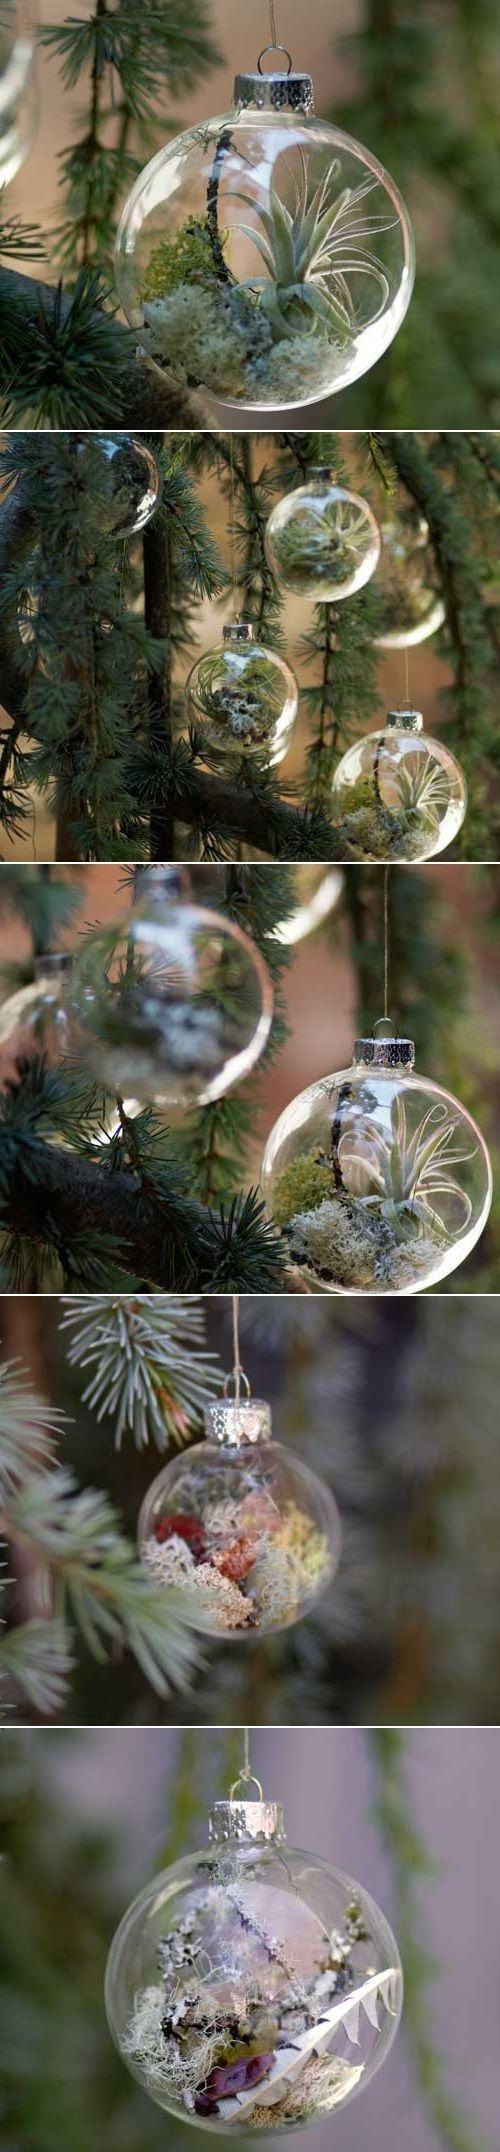 "DIY Ornaments with Living Plants ~ For a natural, ""woodsy"" look! I'm dreaming of a fireside log cabin Christmas with gingham bows, popcorn and cranberry garlands, and these ornaments!"